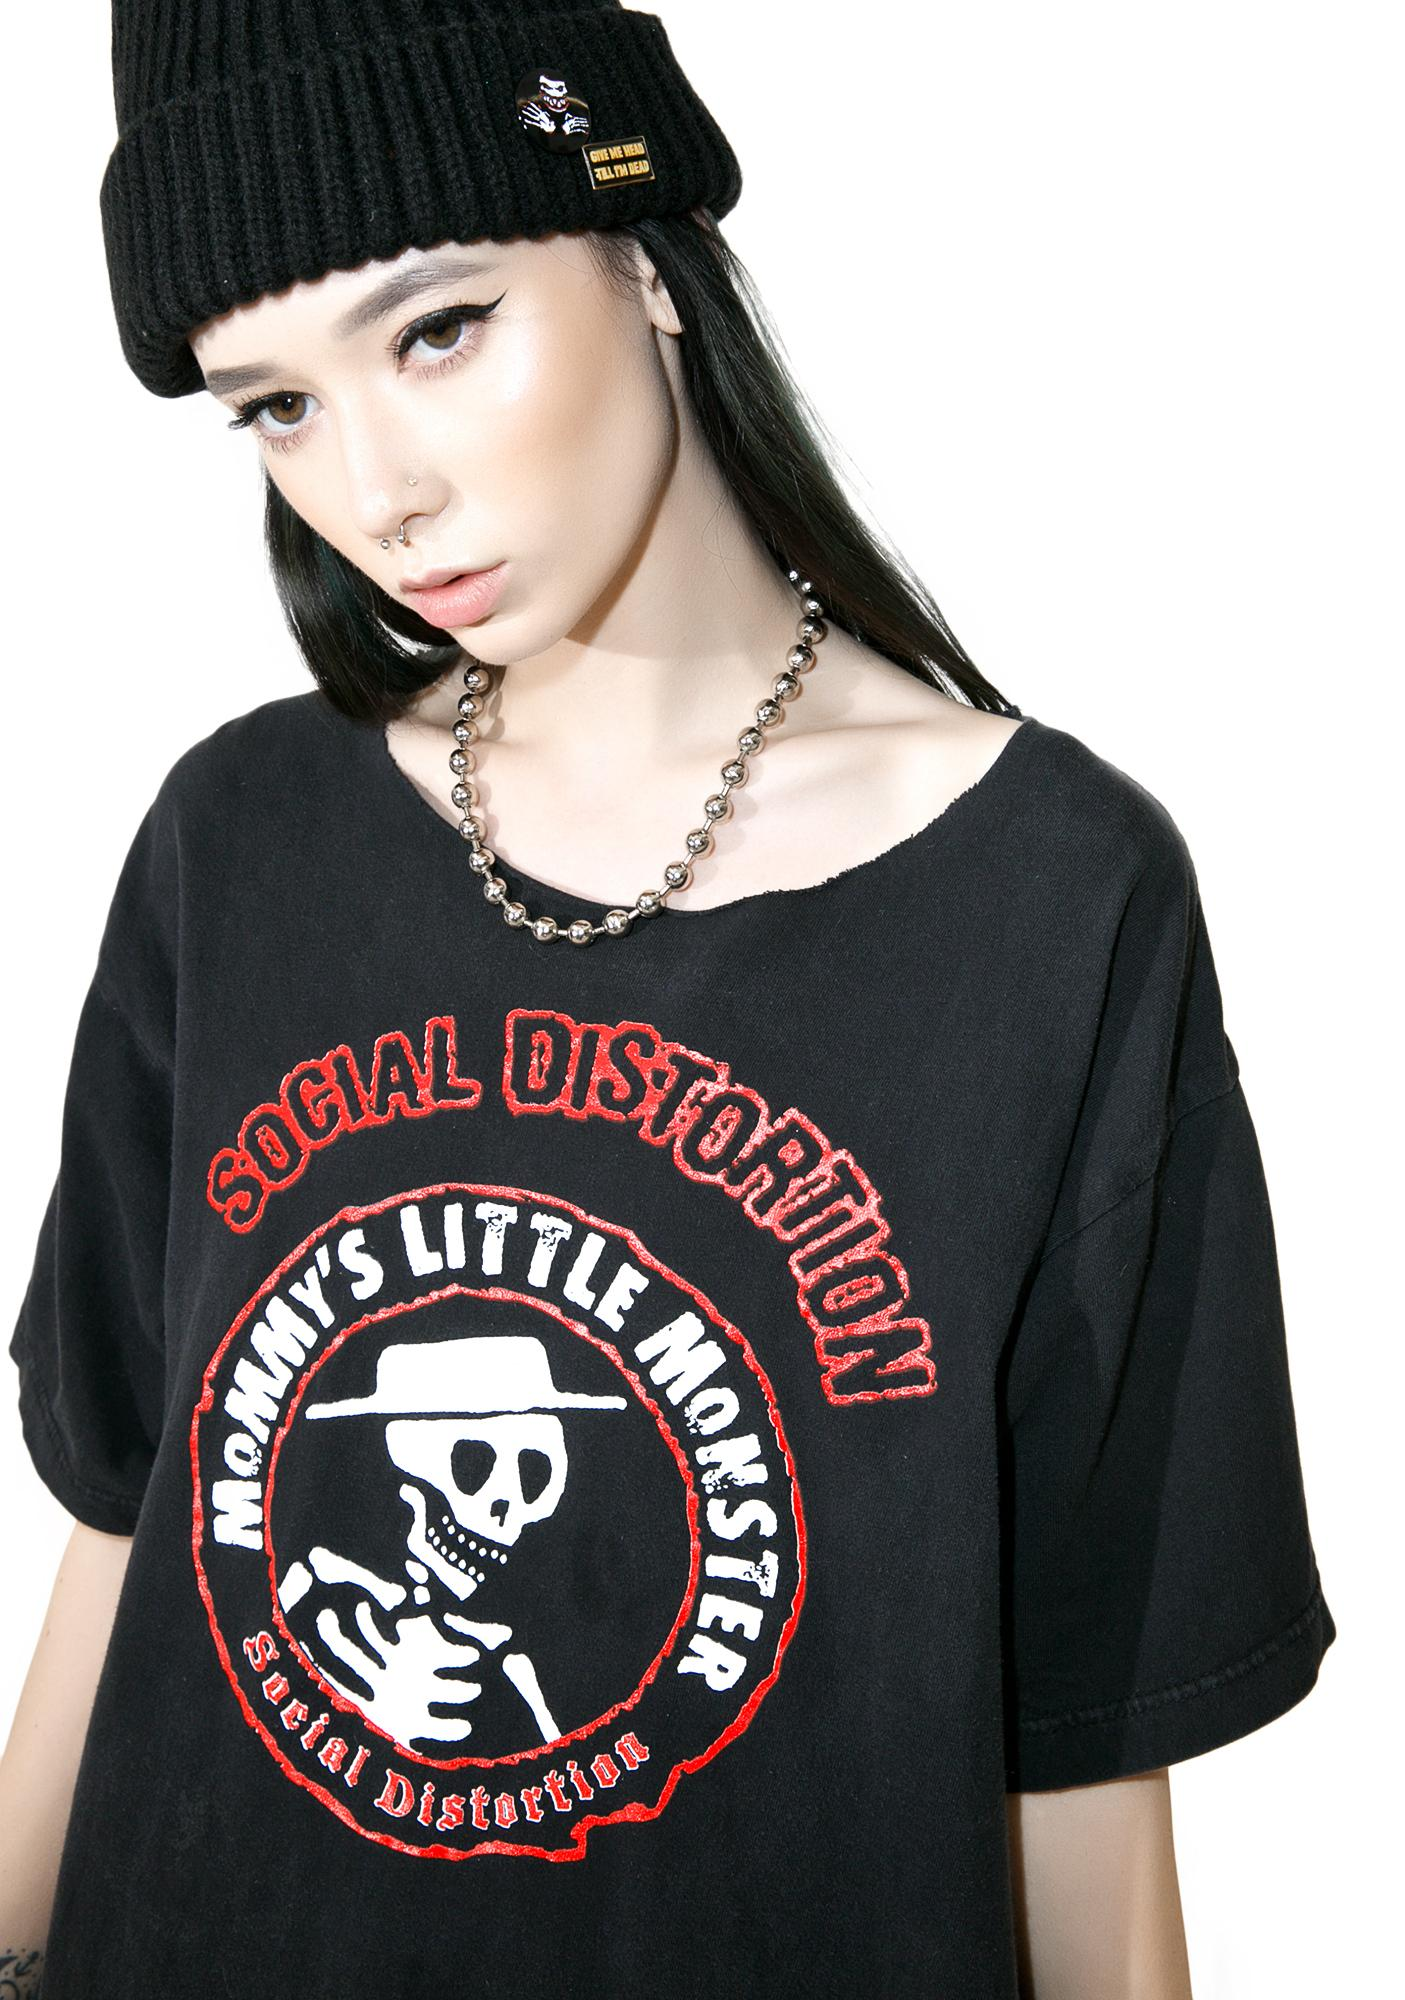 Vintage Social Distortion Tee